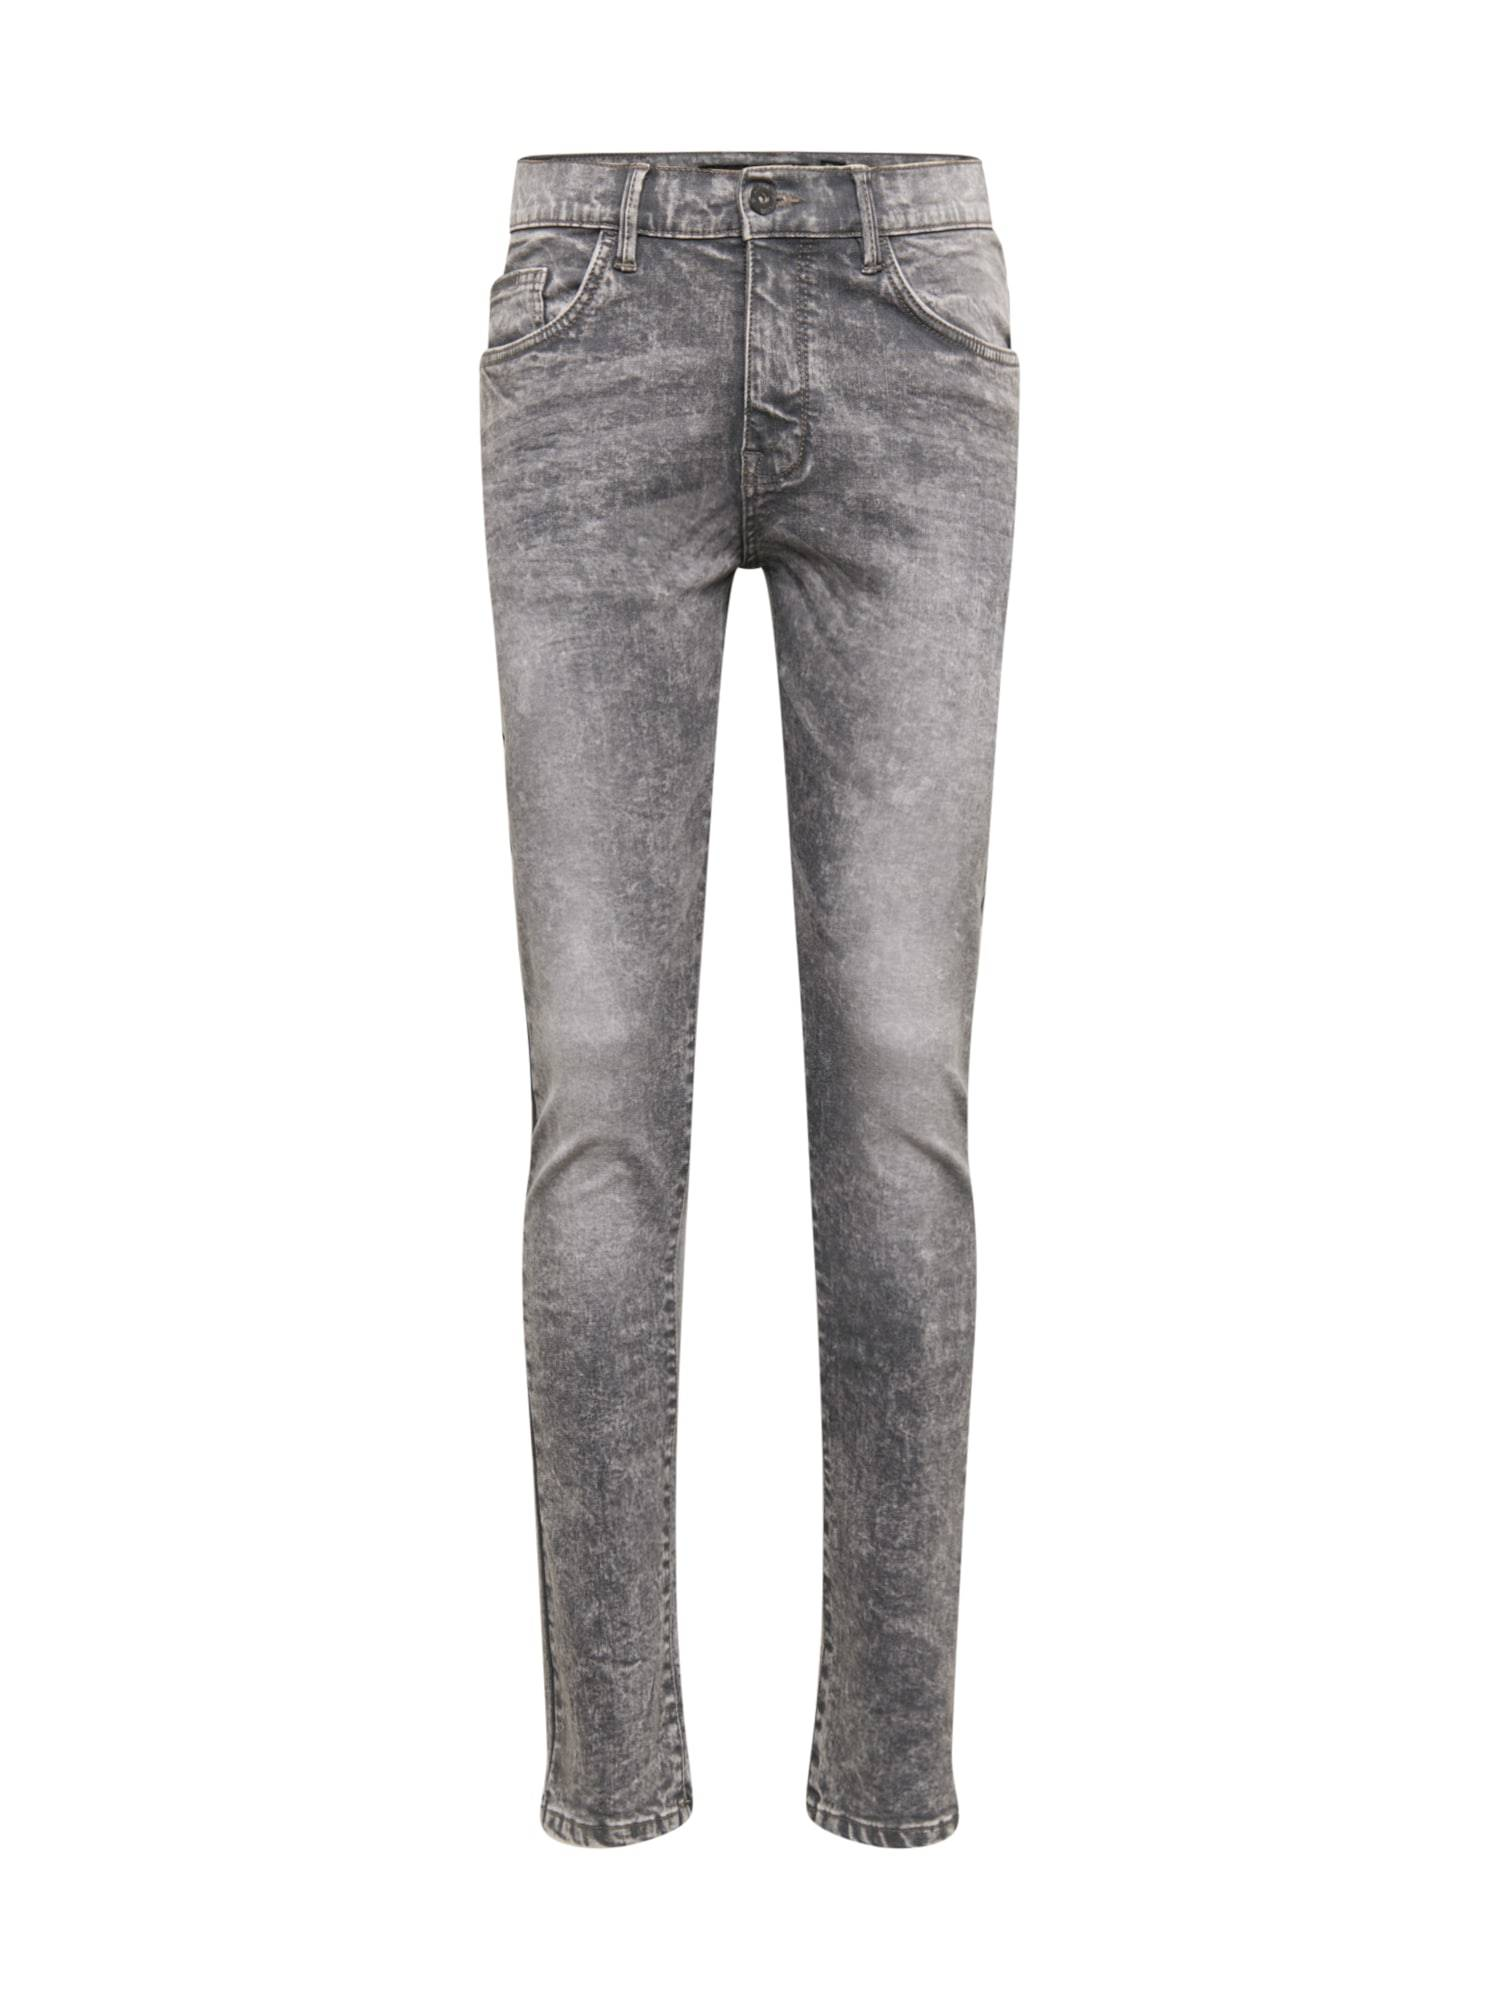 INDICODE JEANS Jean 'Culpeper'  - Gris - Taille: 31 - male